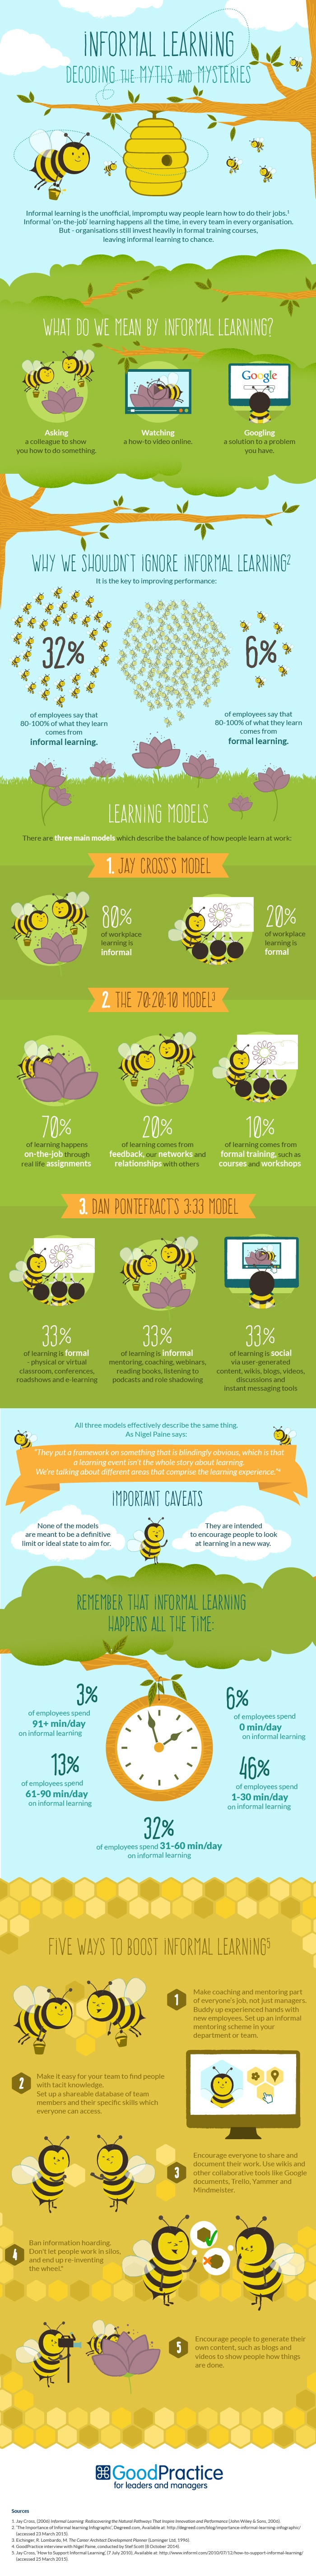 Decoding the Myths and Mysteries of Informal Learning Infographic